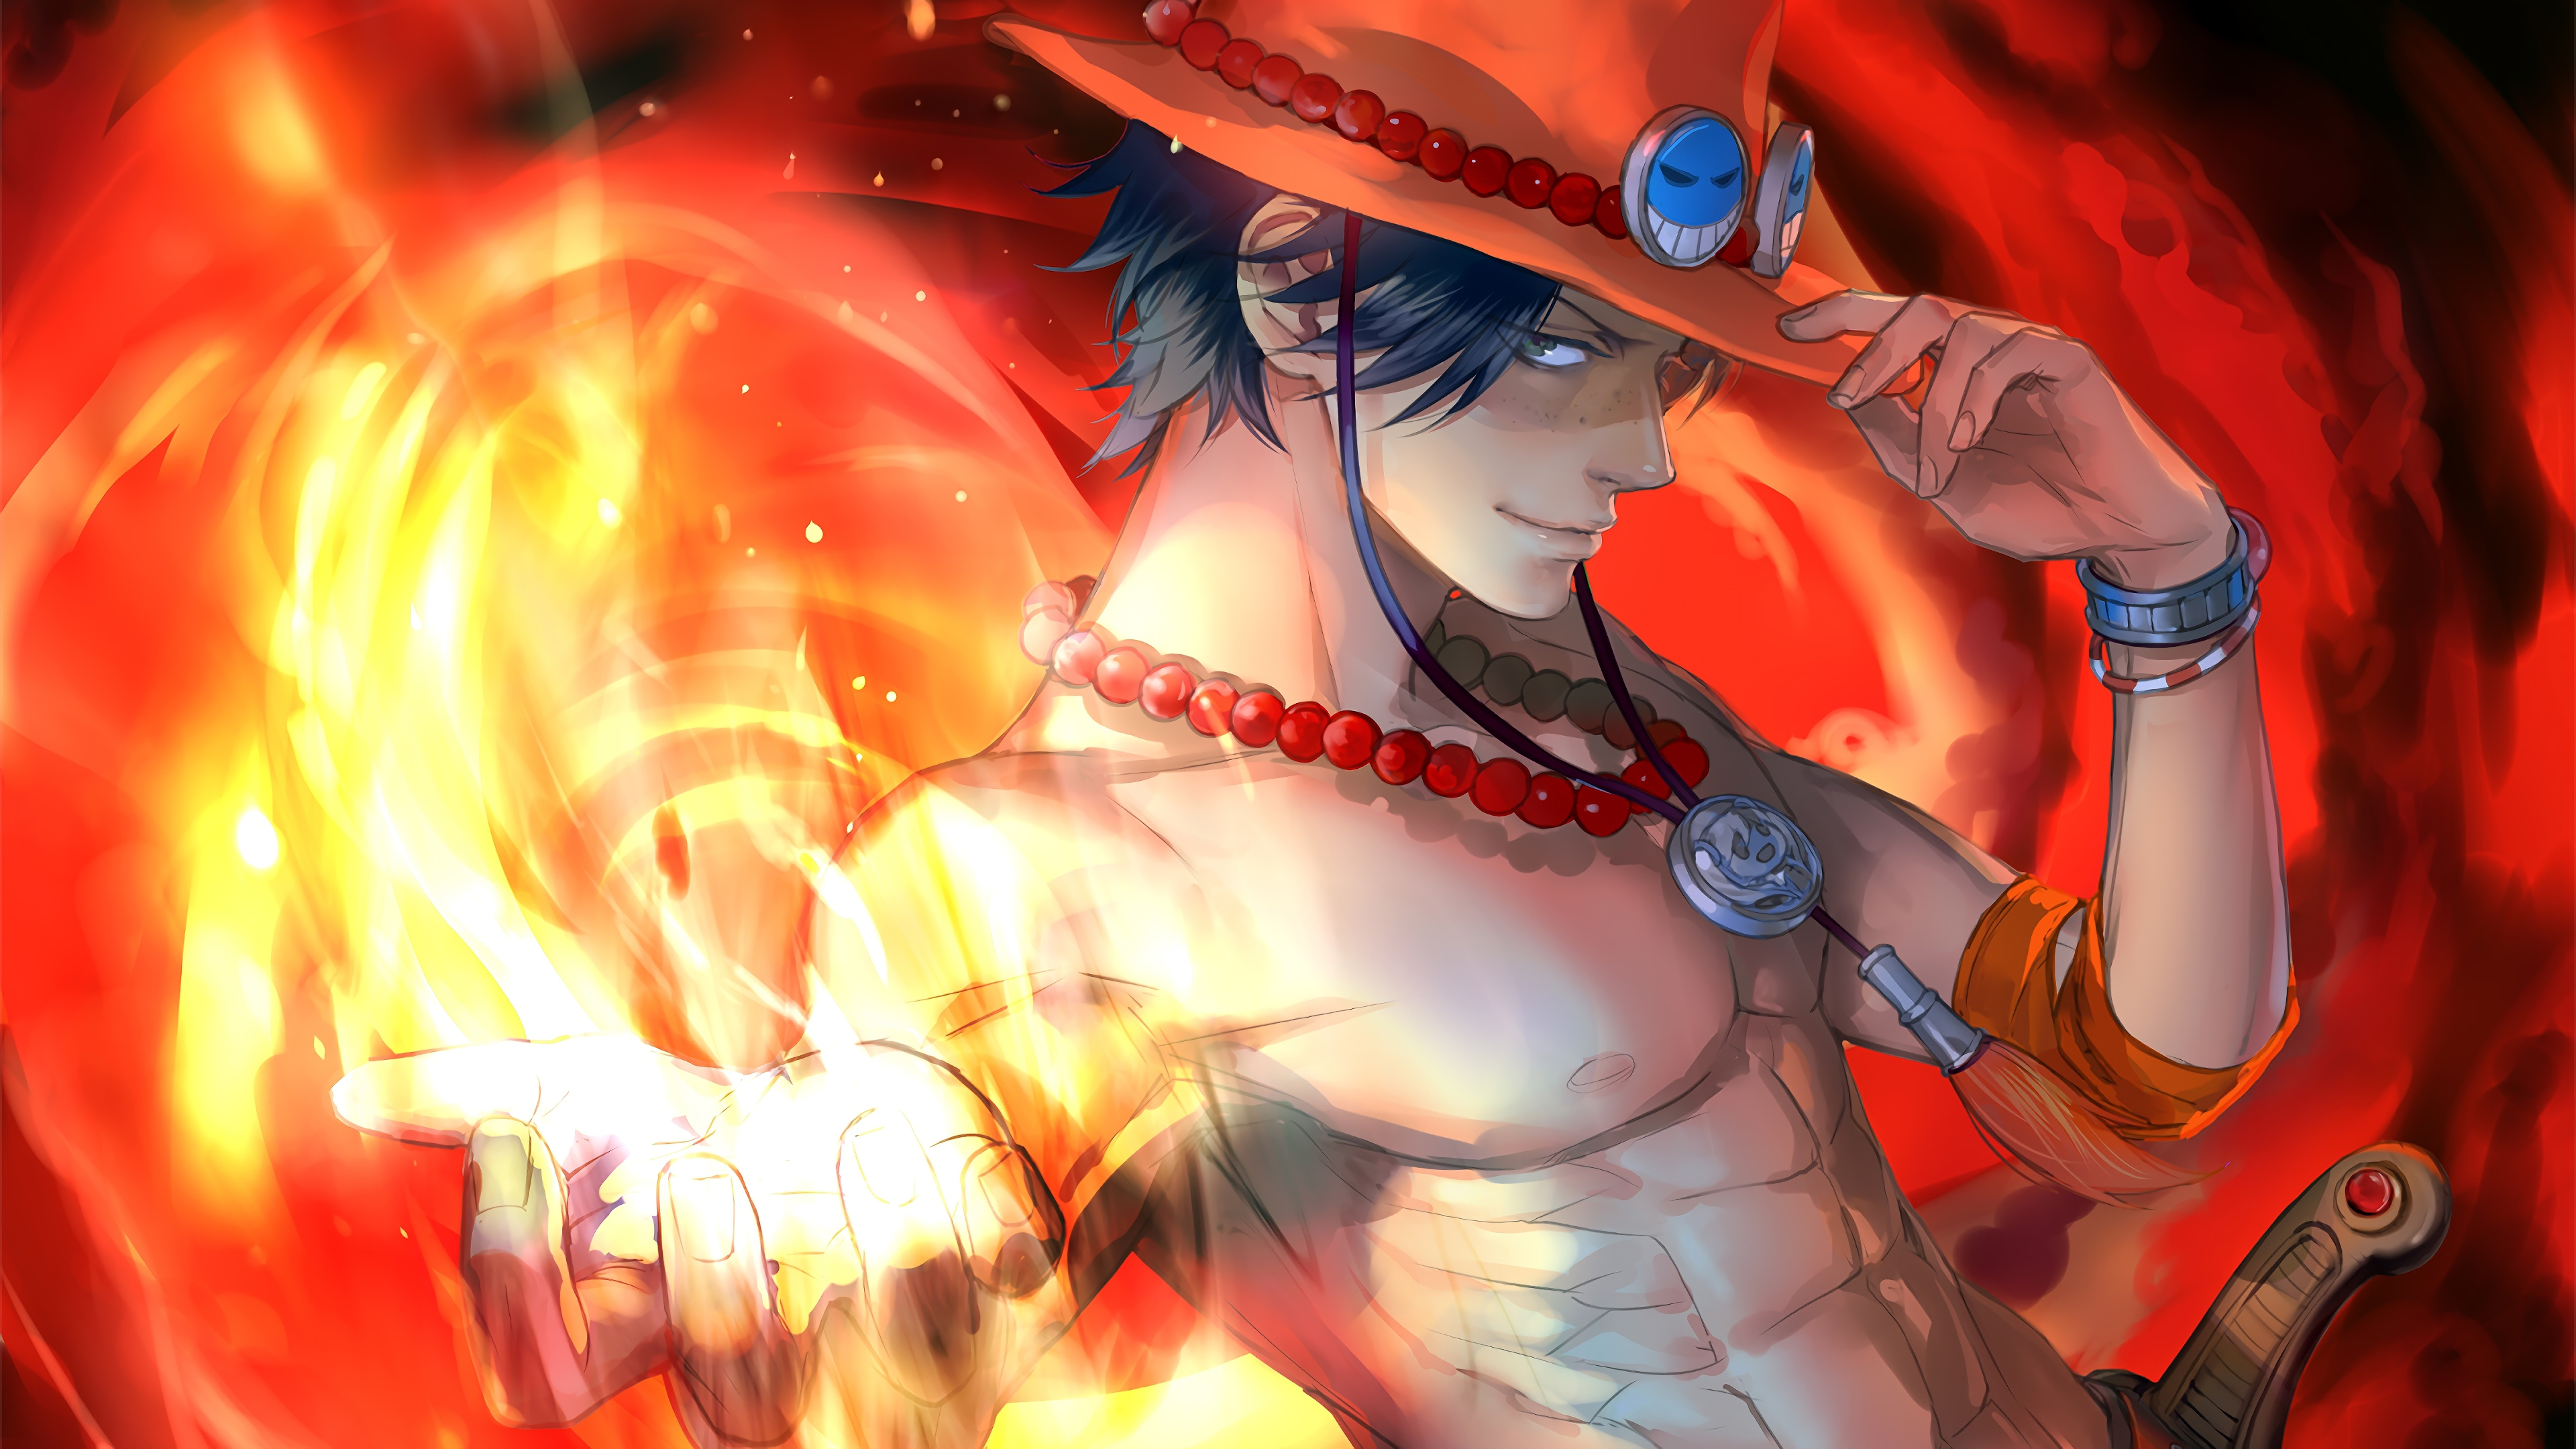 Ideas For Ultra Hd One Piece Ace Wallpaper pictures